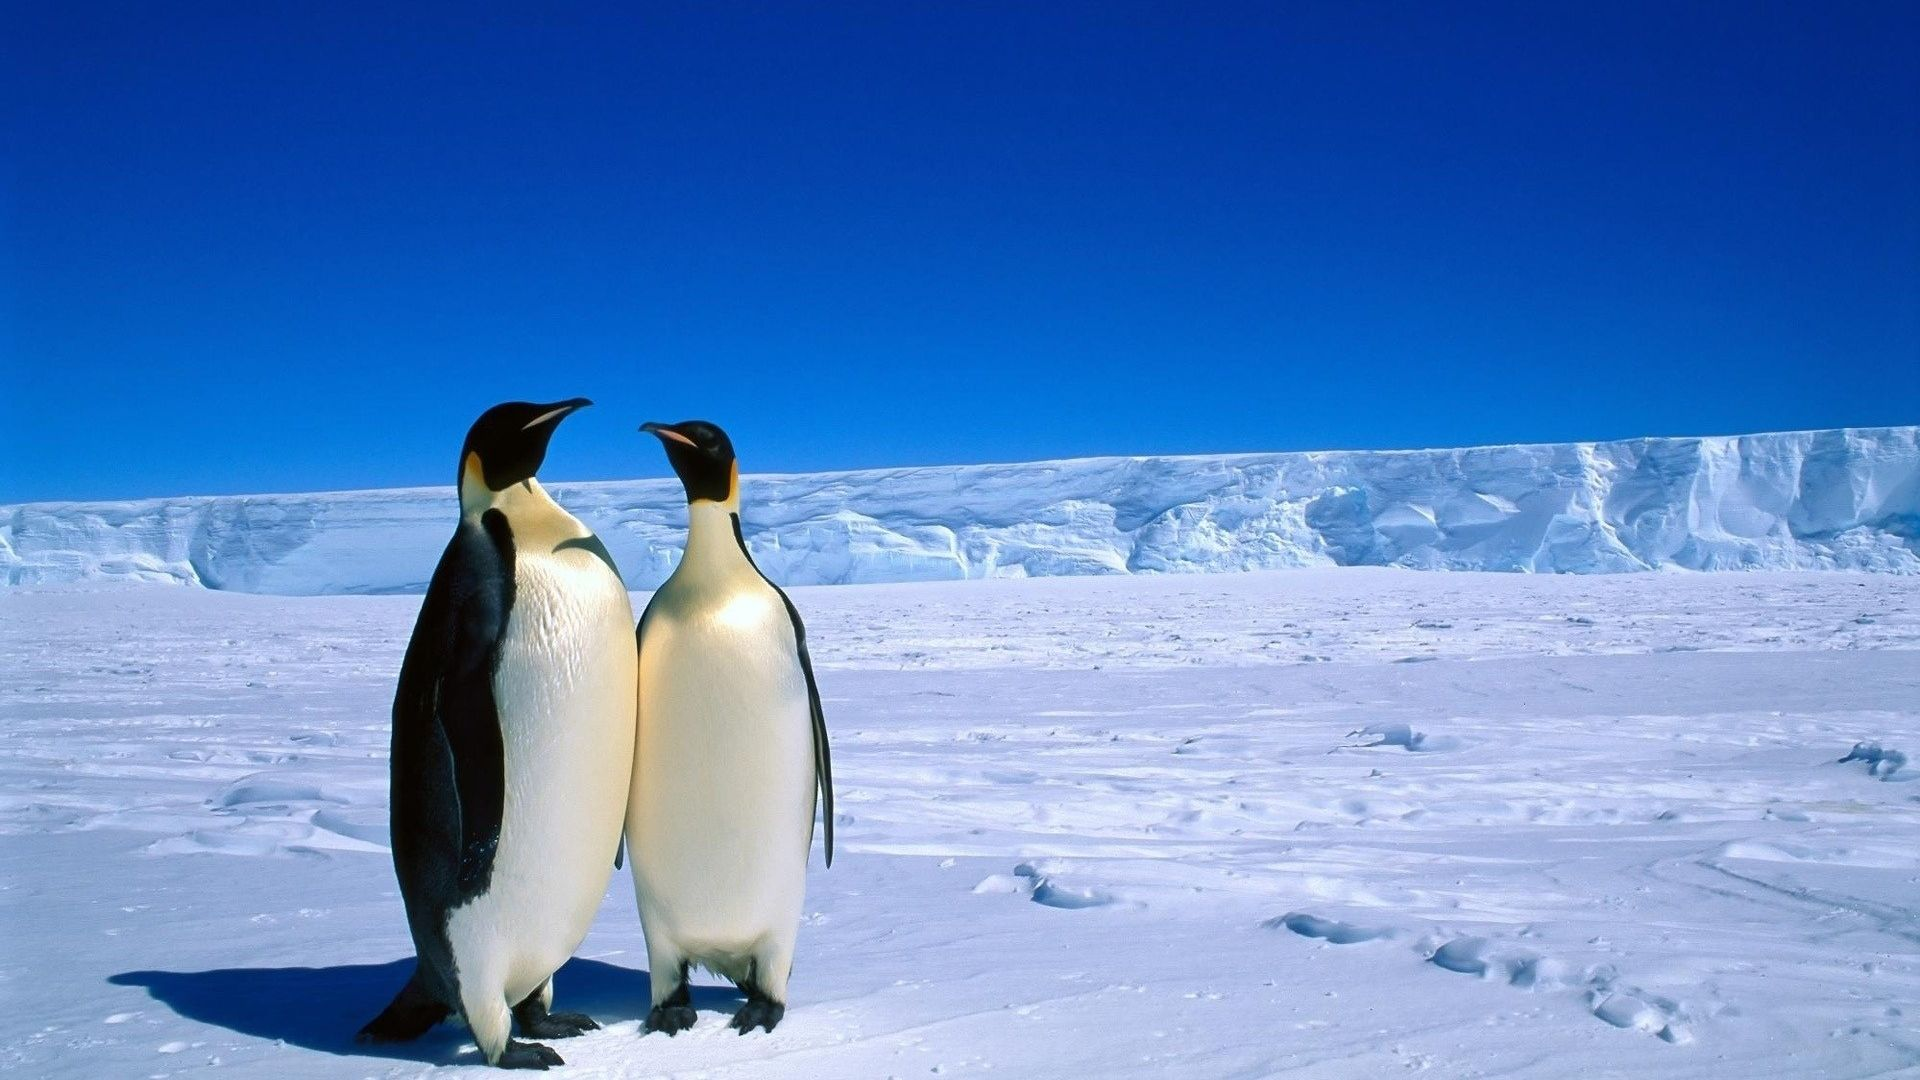 Penguins Love HD Wallpaper   Wallpaper Stream 1920x1080